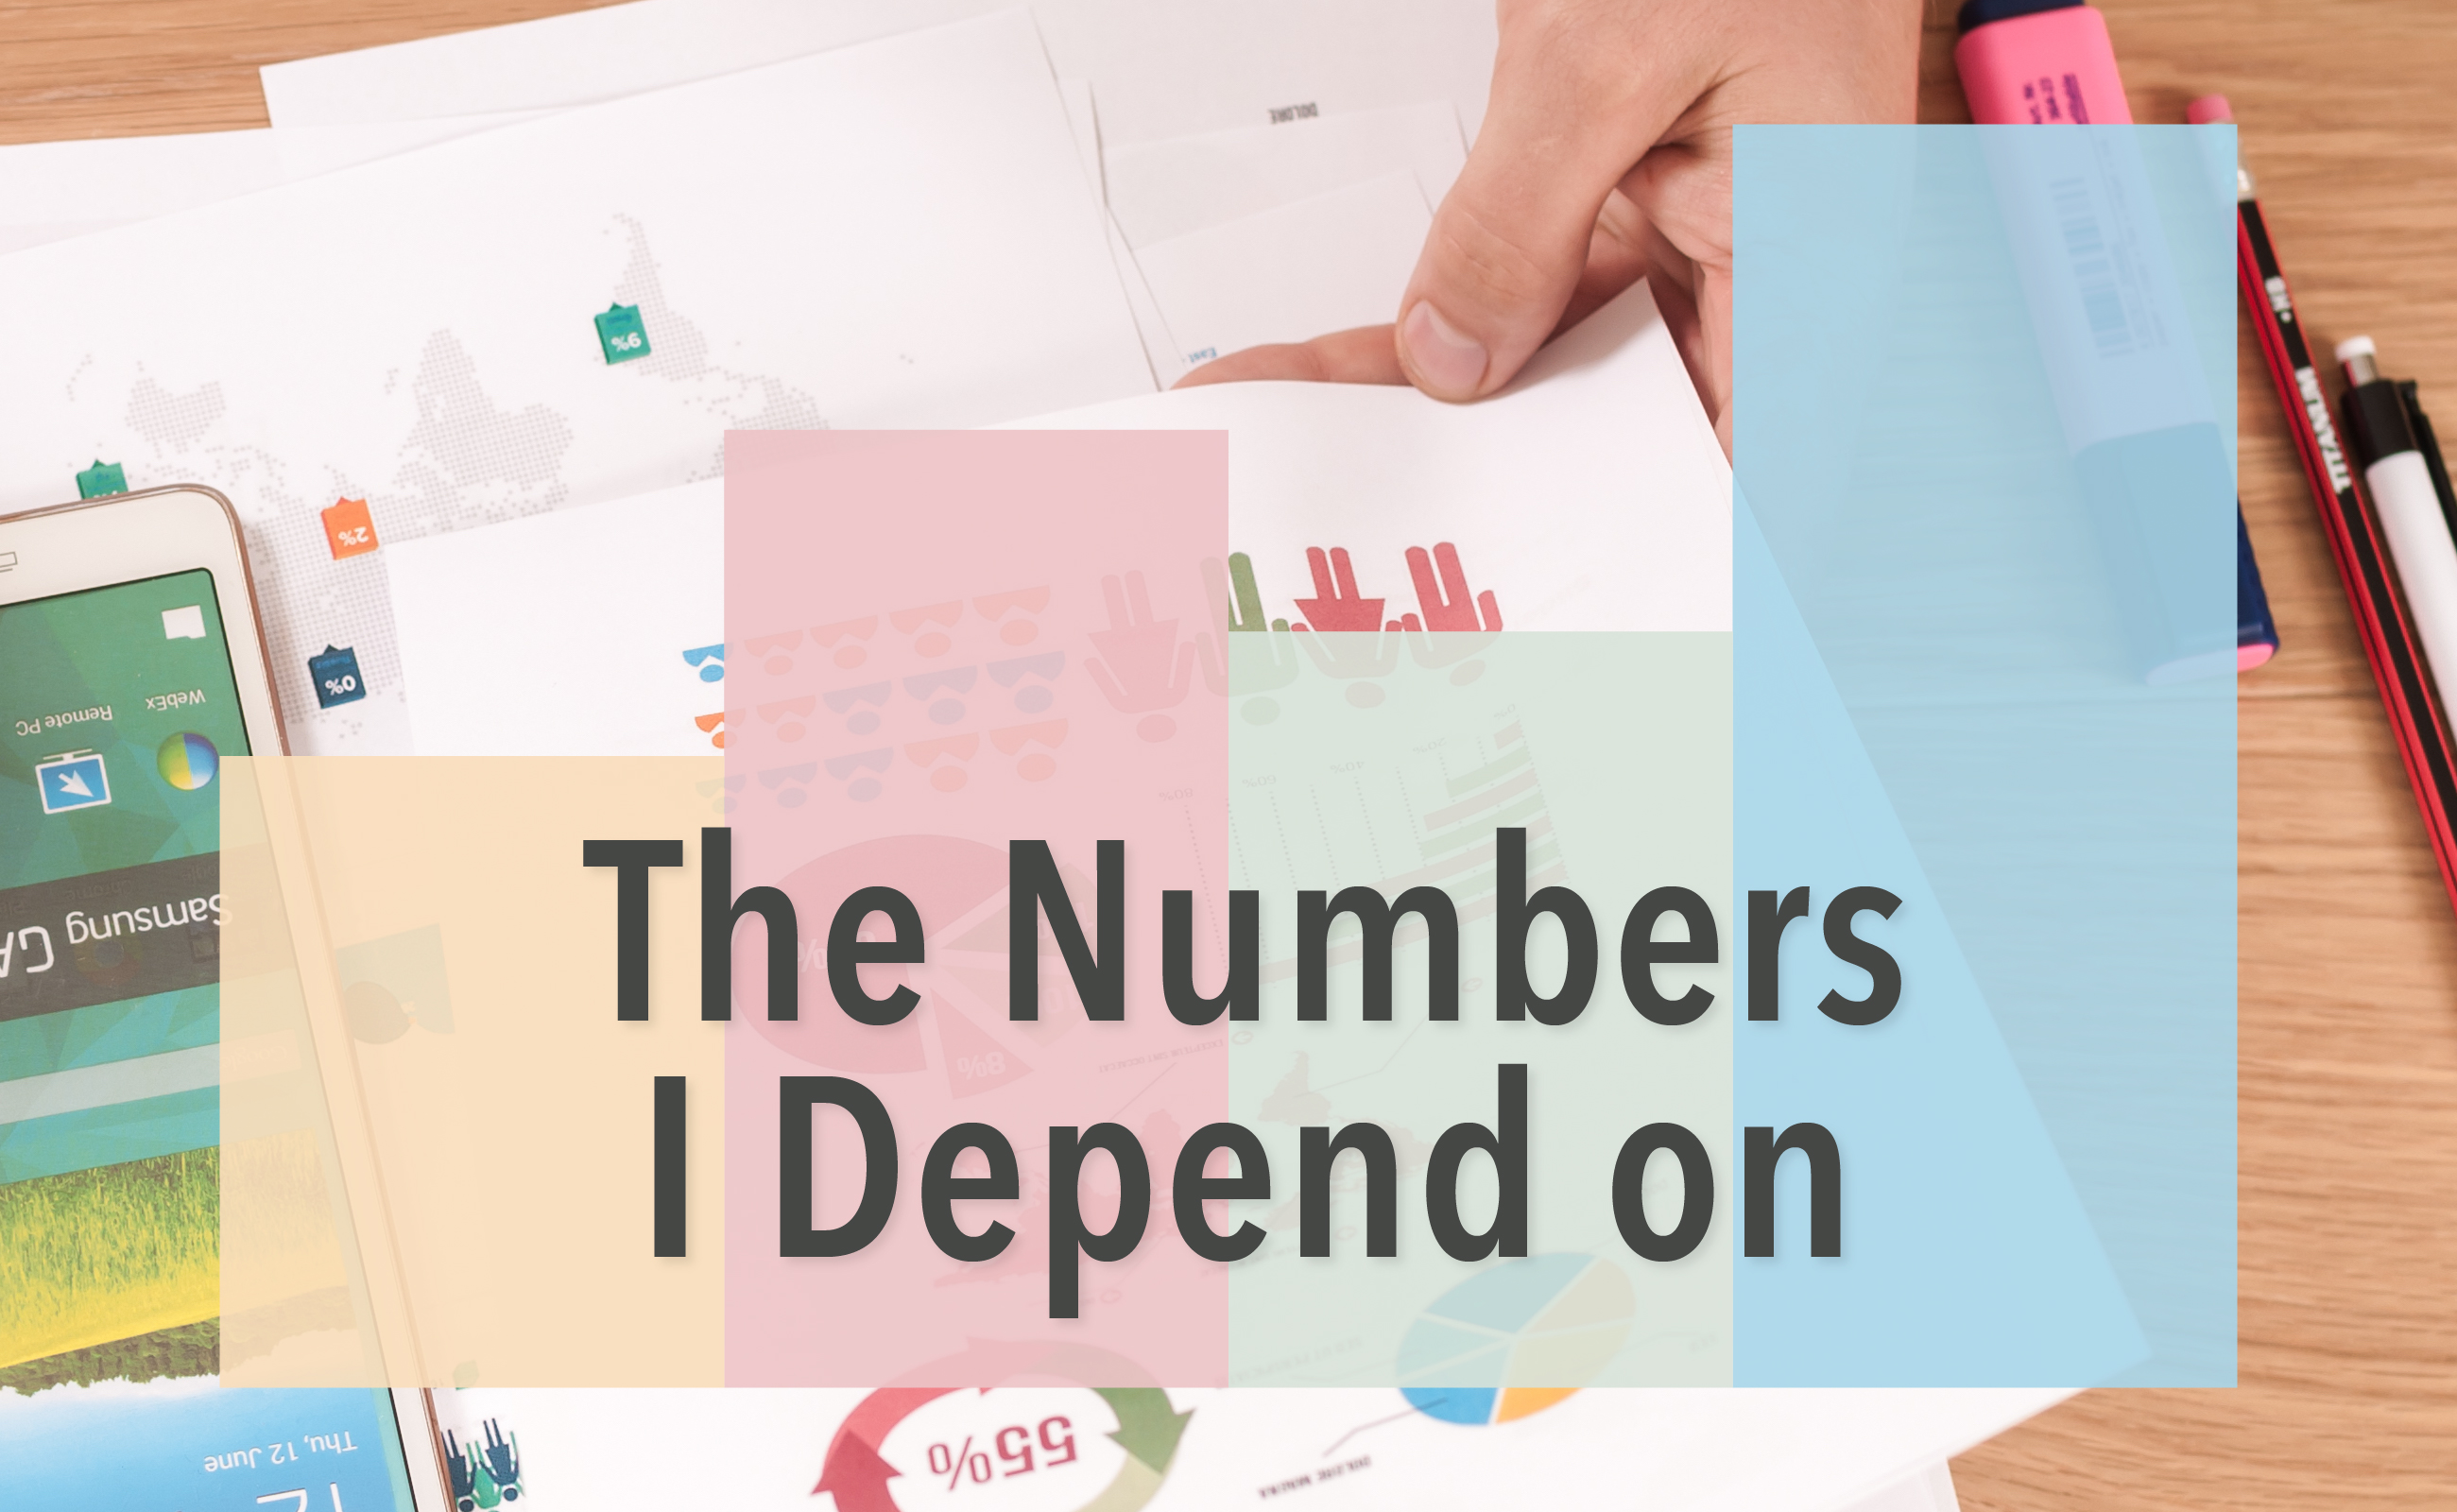 The Numbers I Depend on image